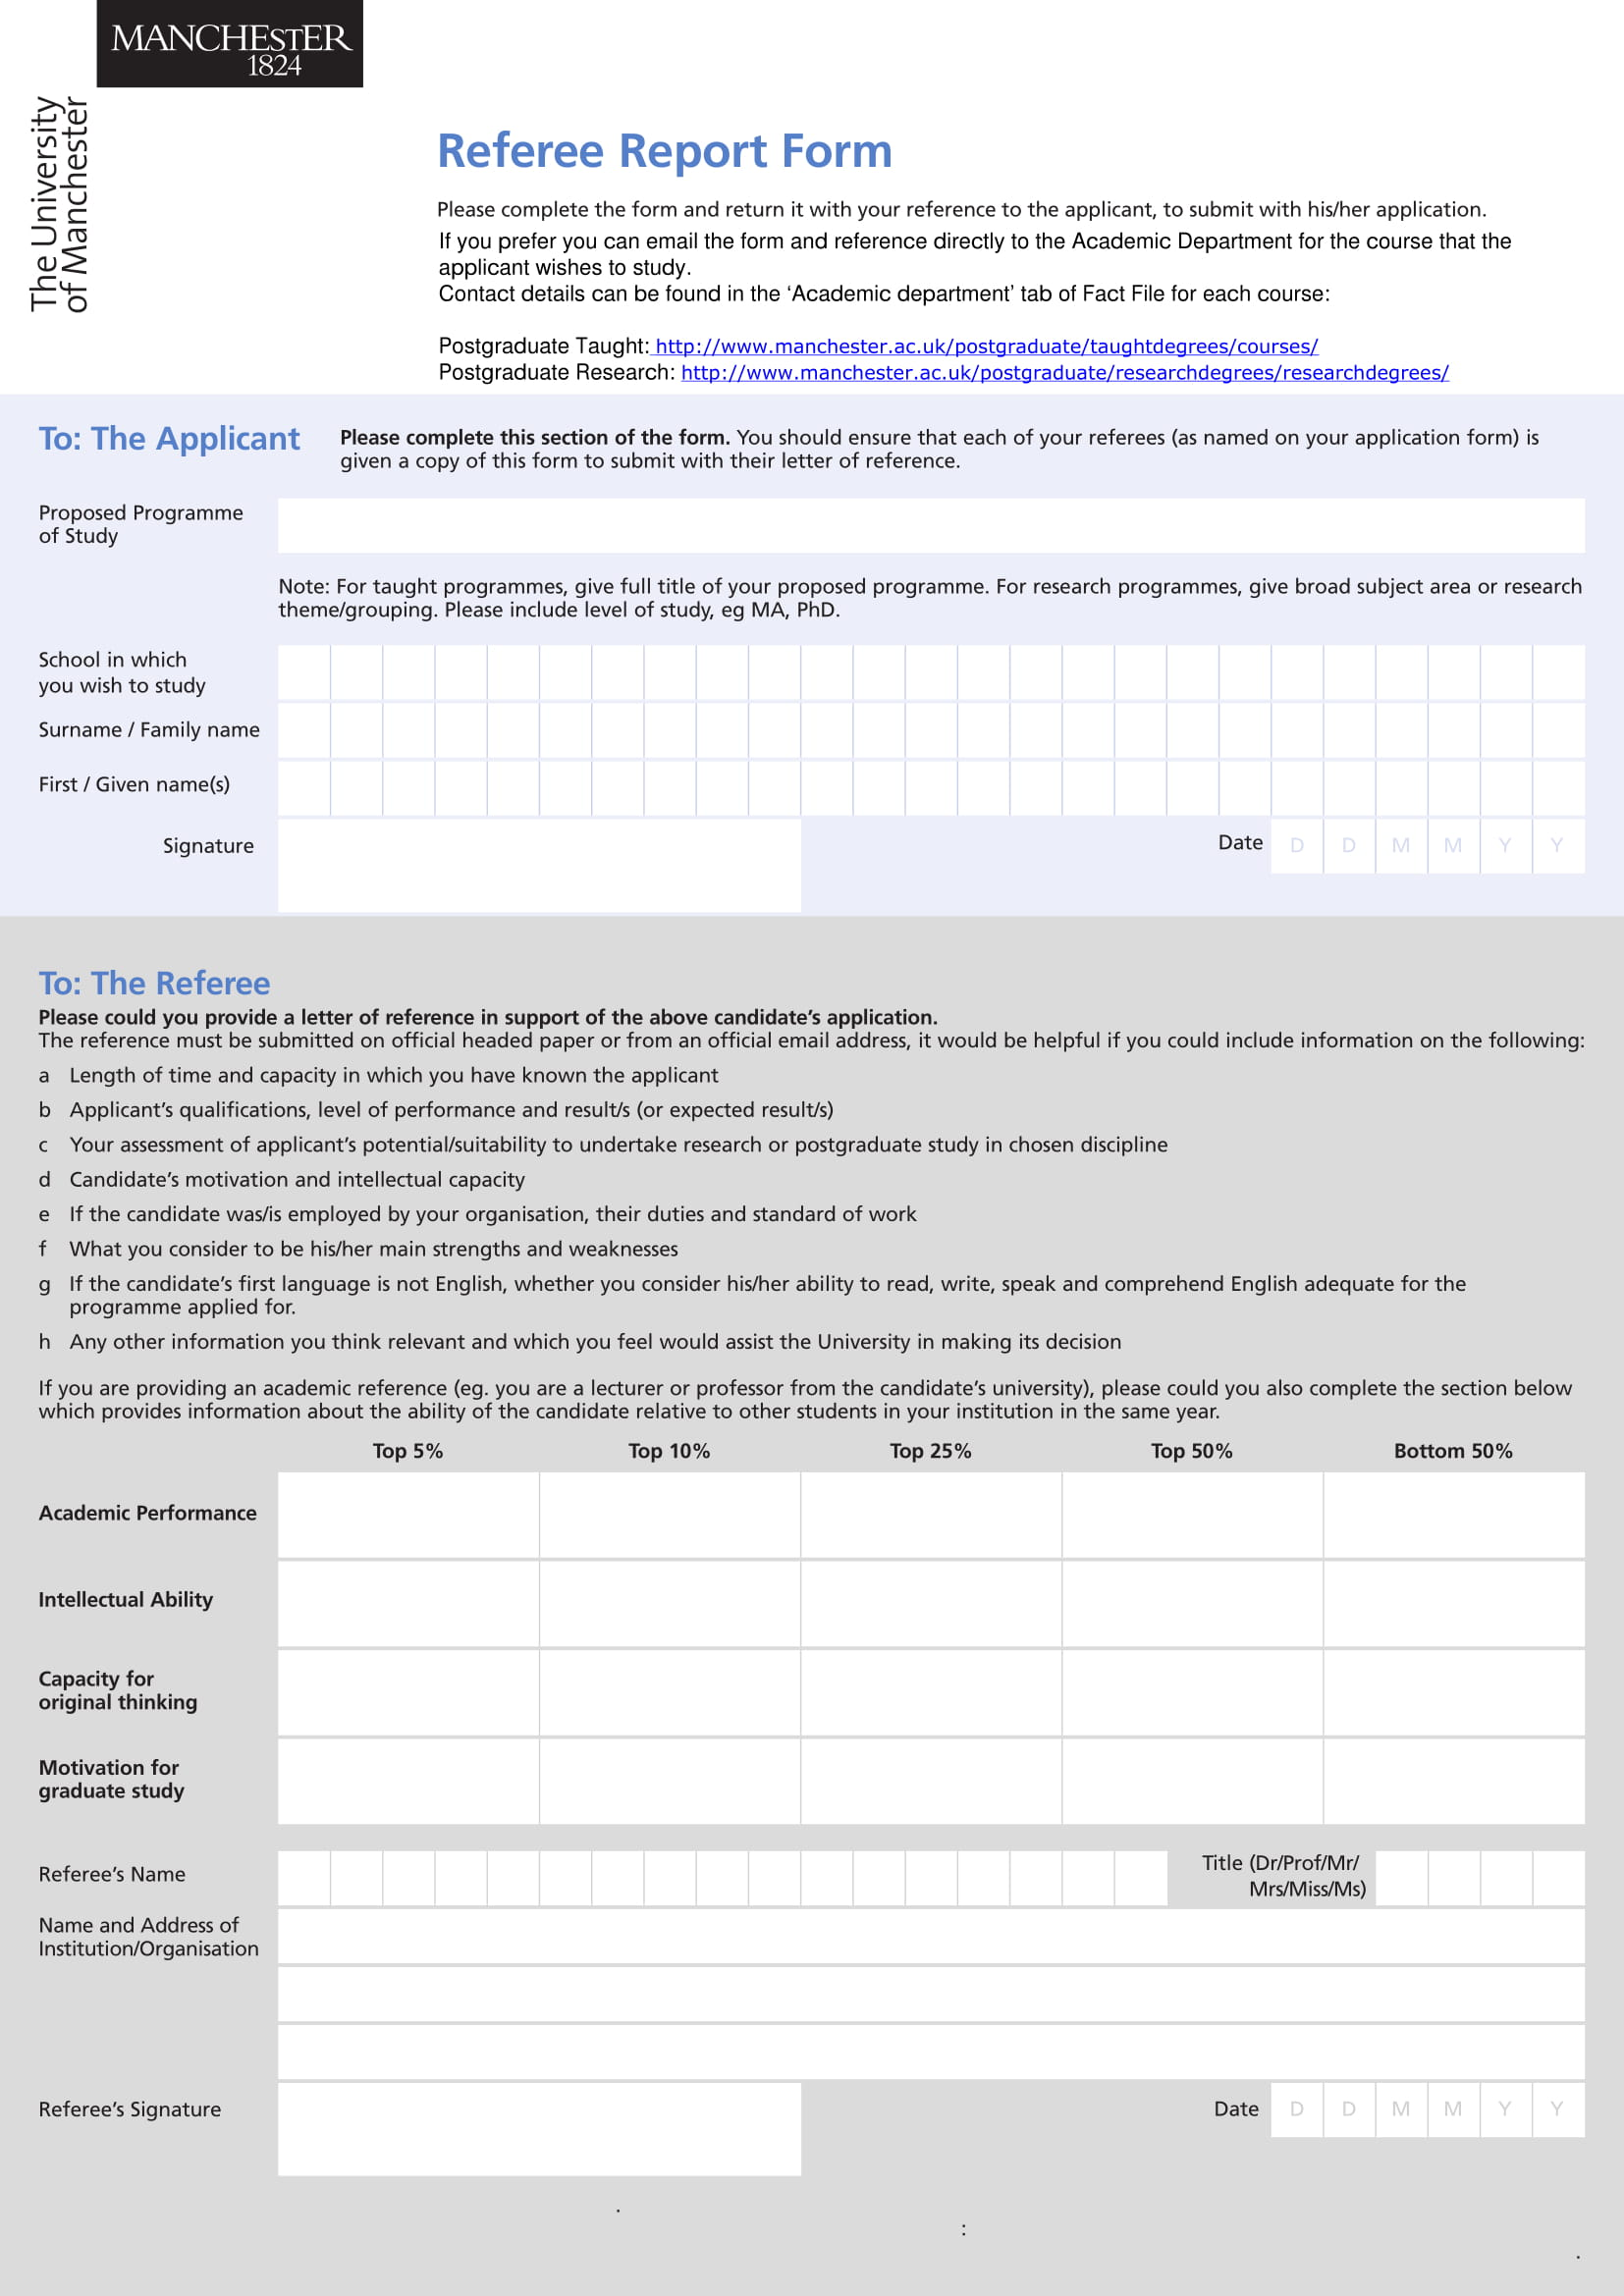 fillable referee report form 1